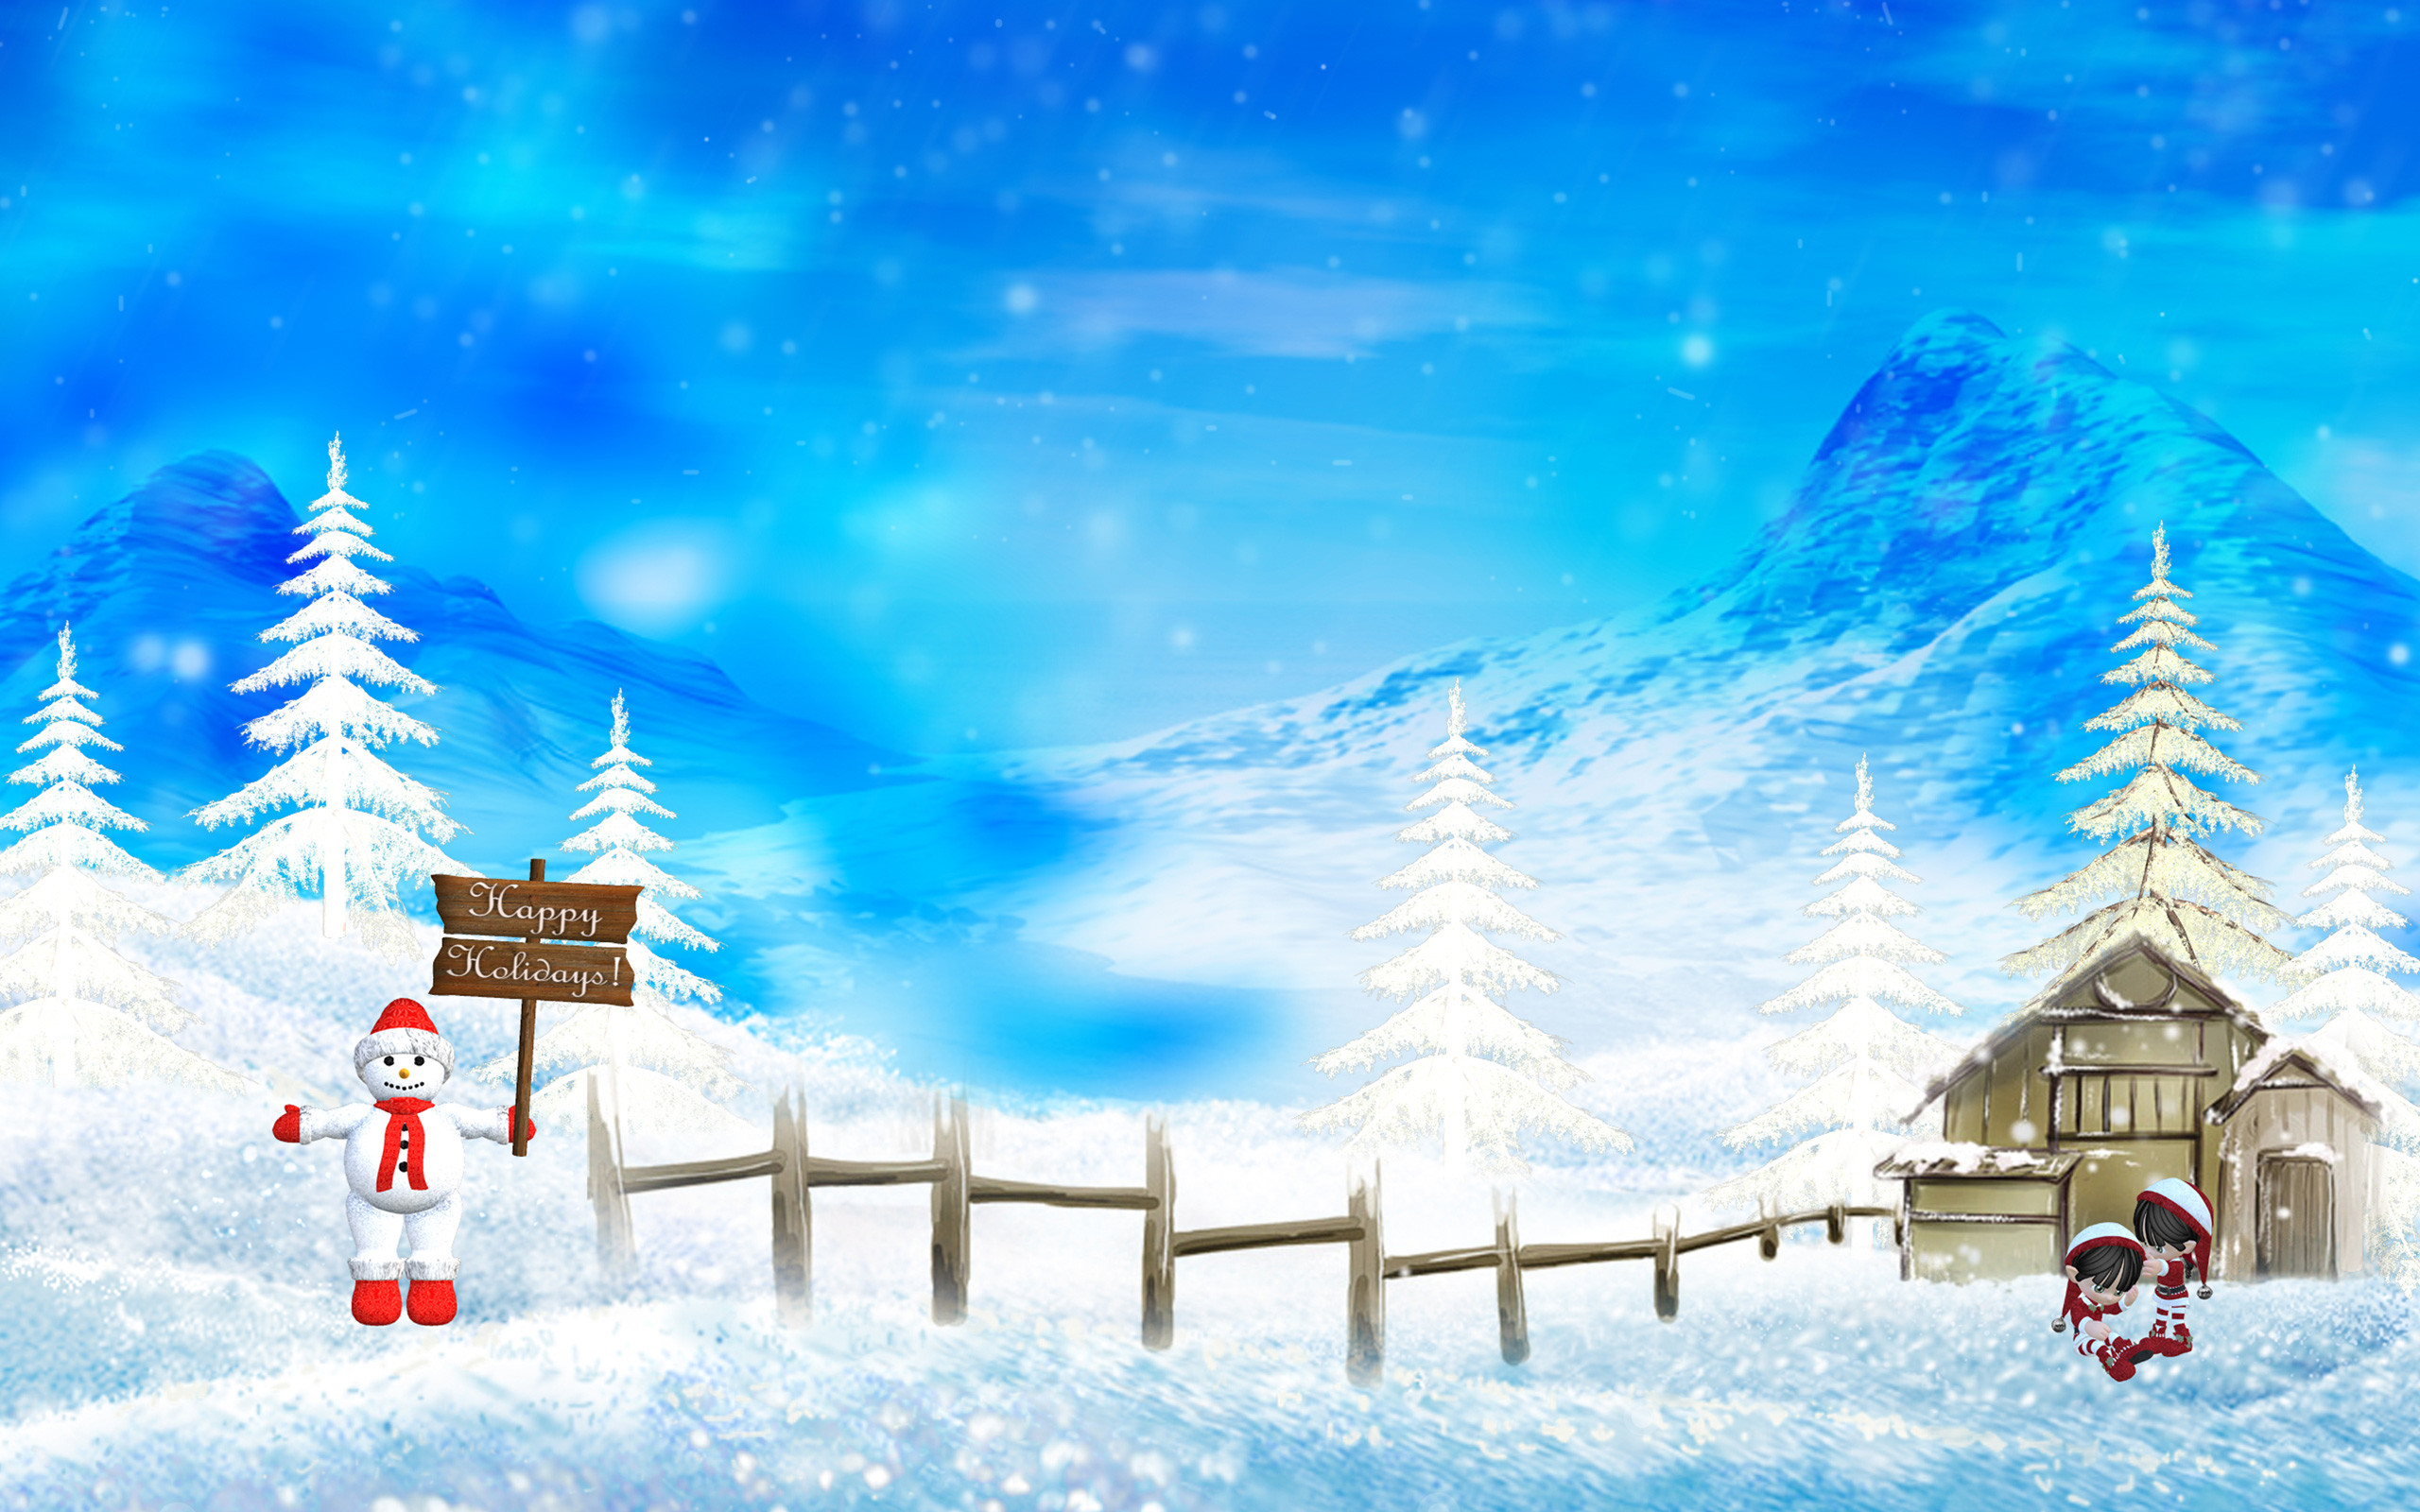 Christmas Snow Wallpaper Scenes 38 Images